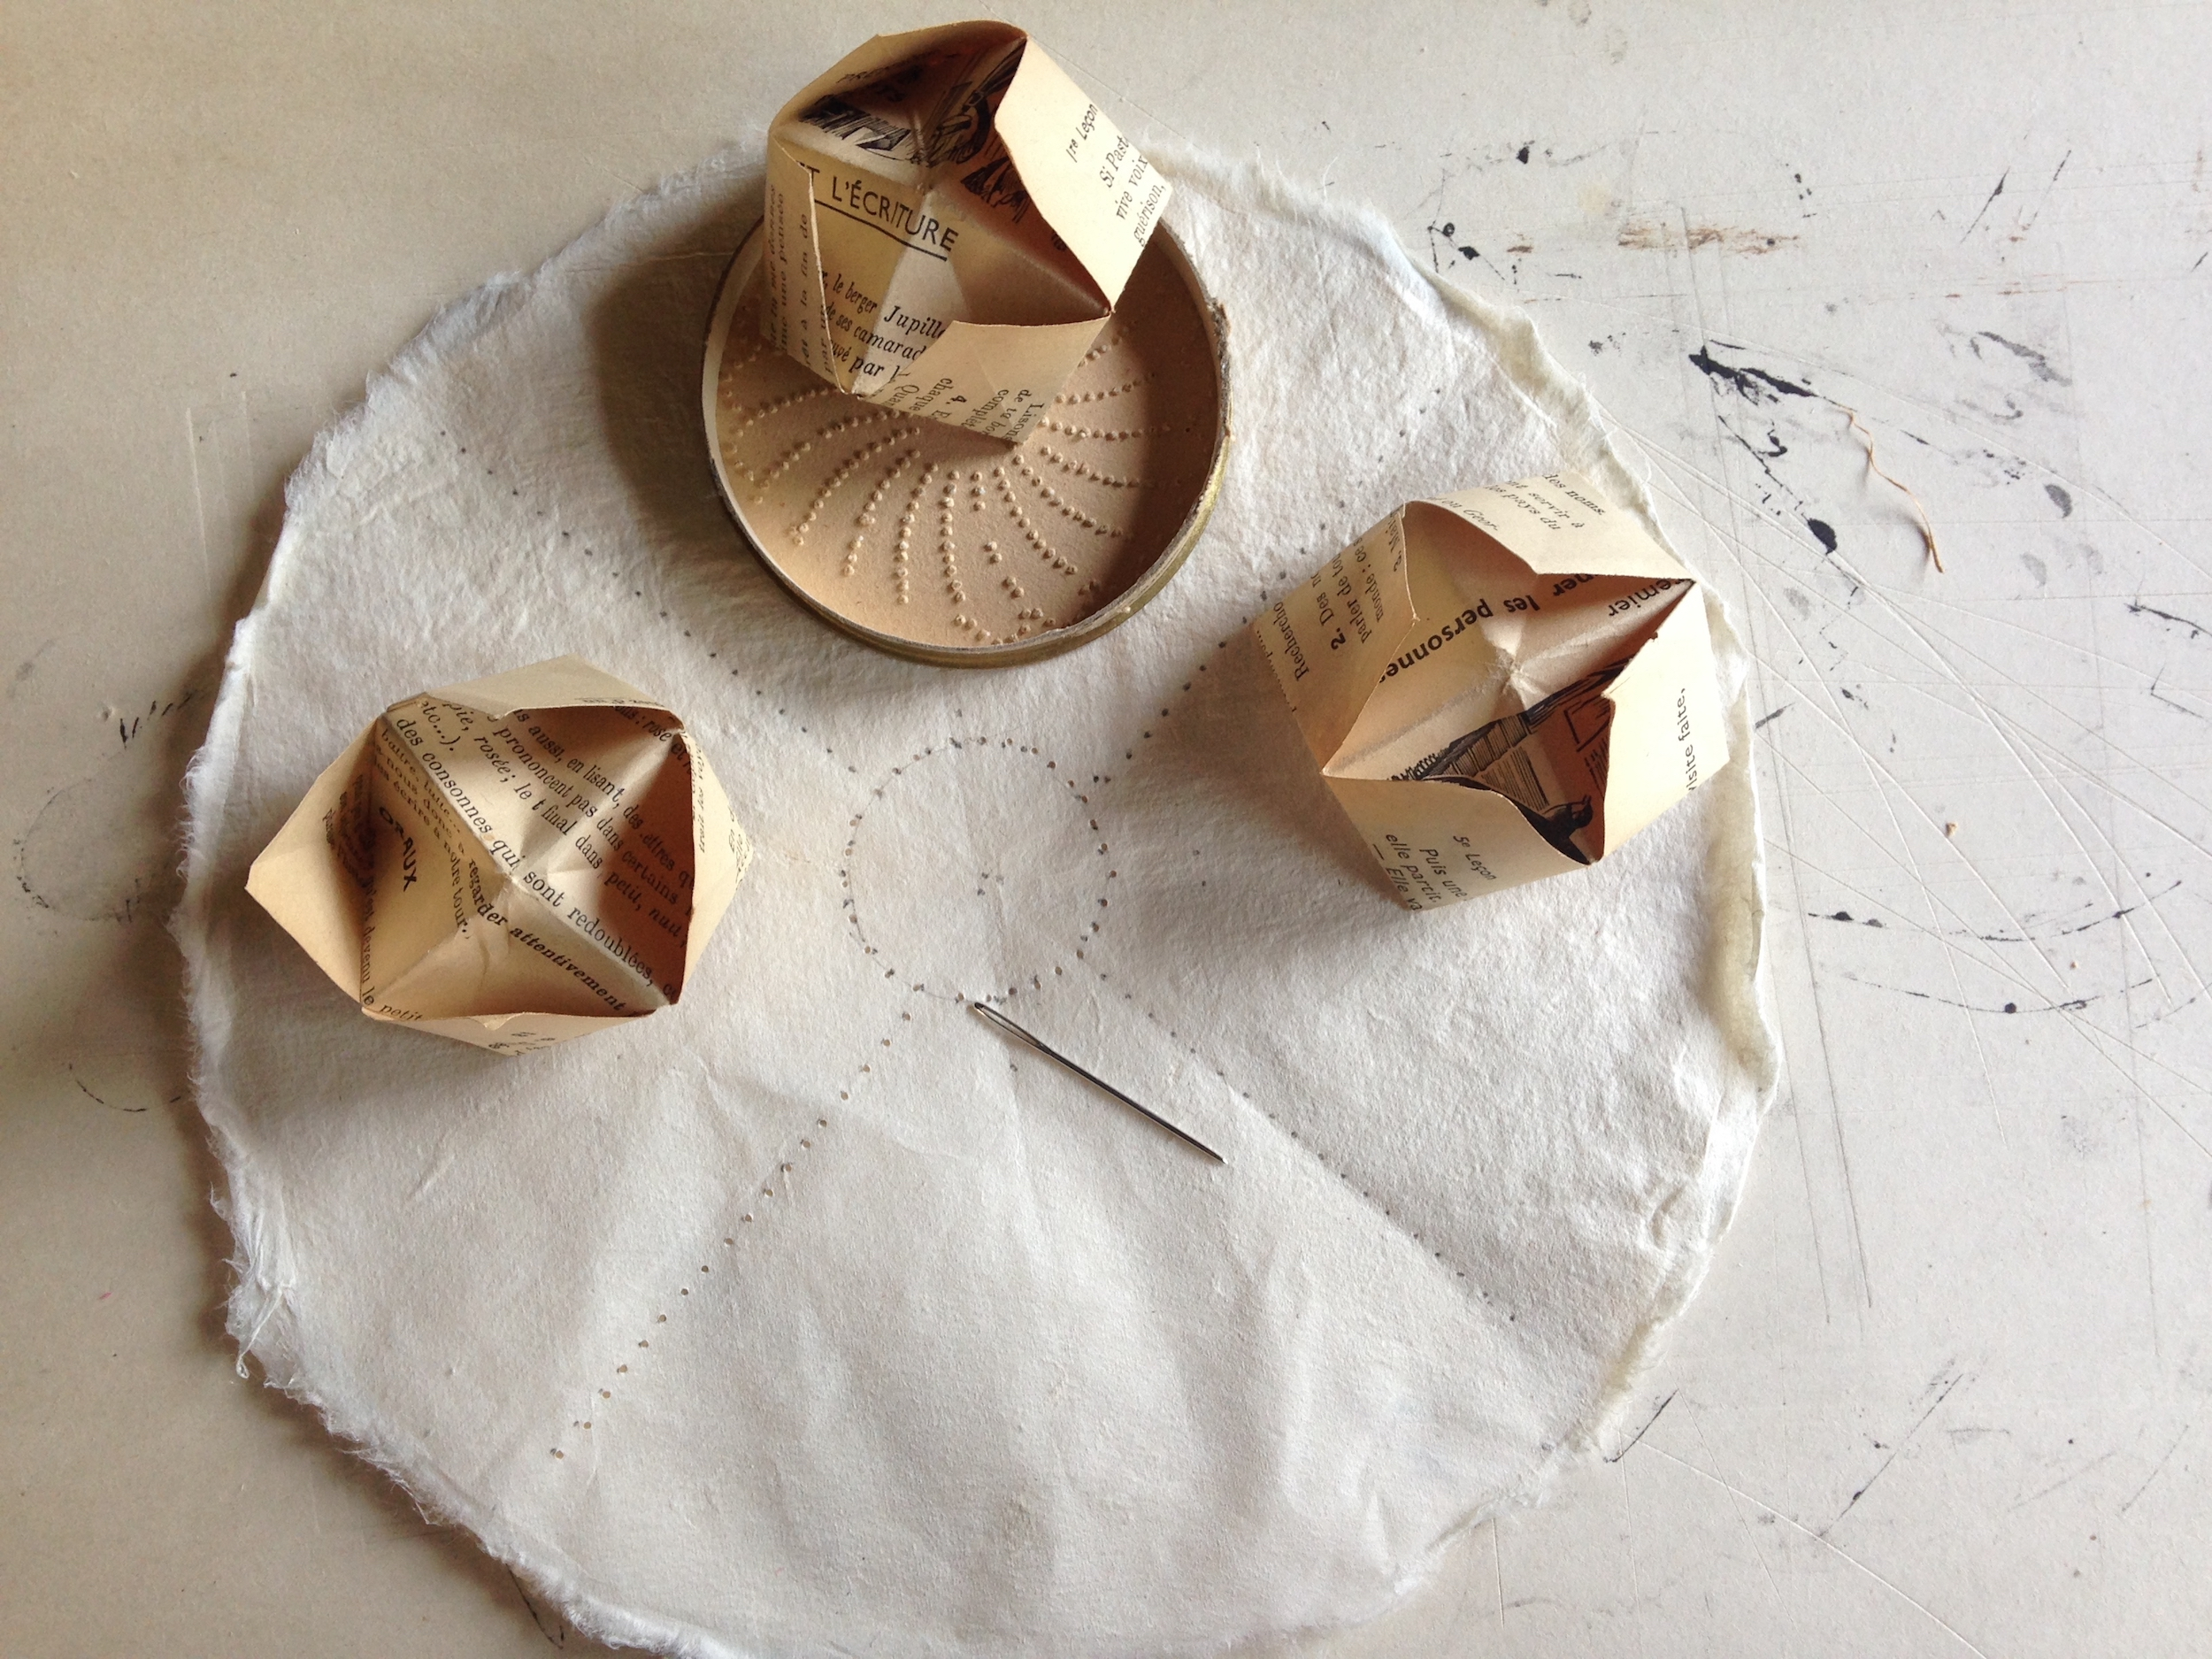 Handmade kozo paper with holes marked and paper chatterboxes